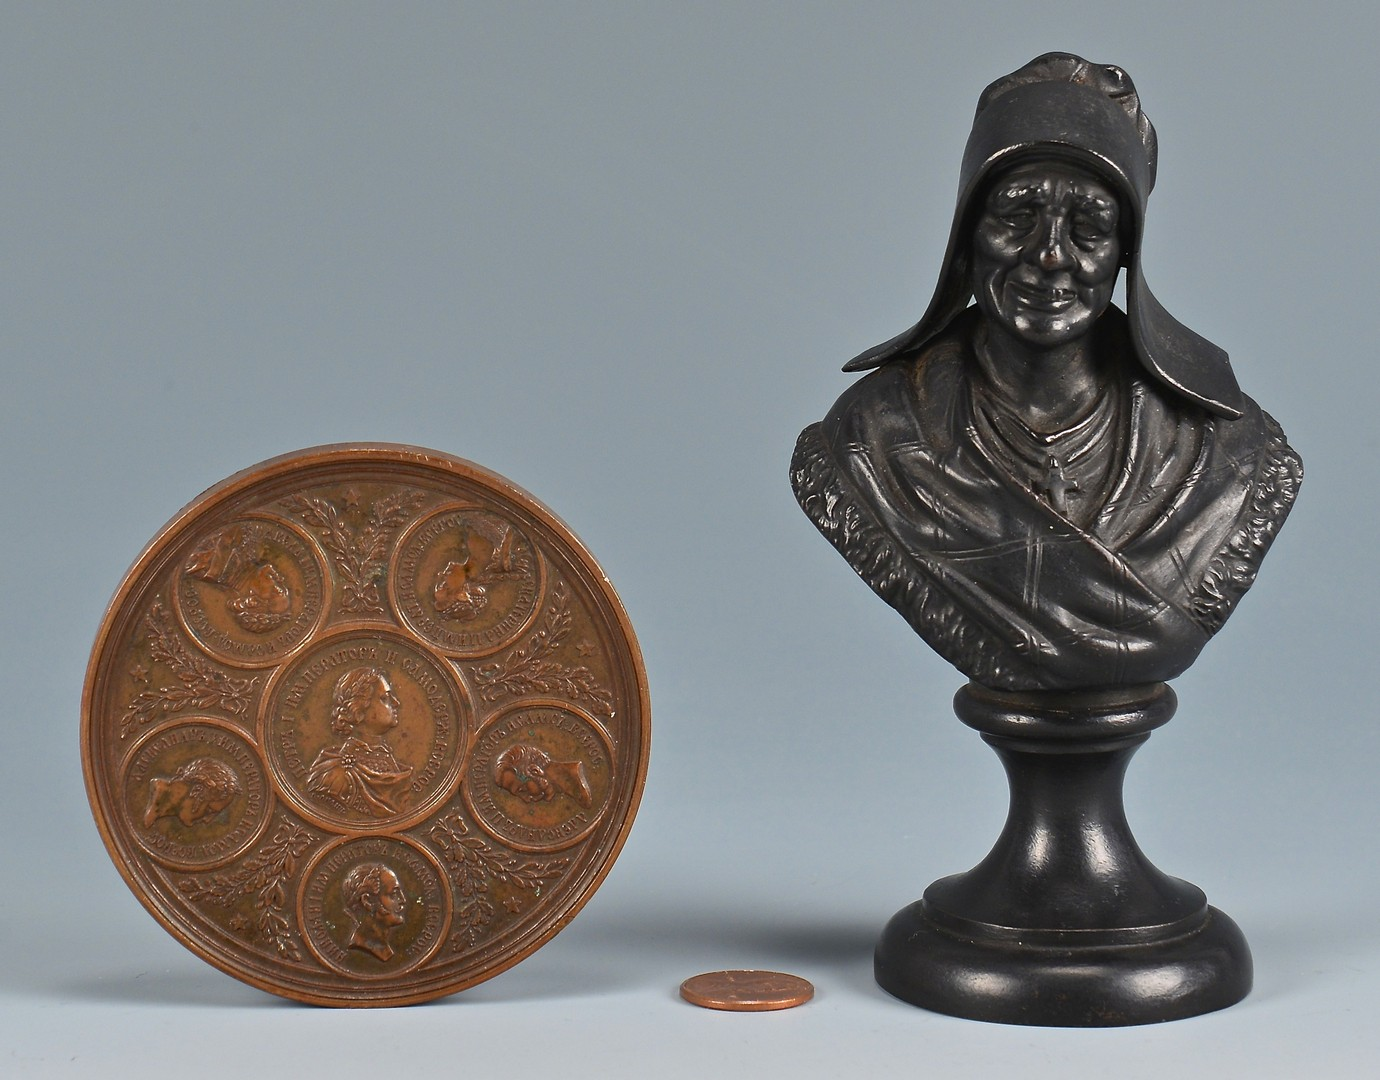 Lot 231: Two Russian Themed Decorative Items